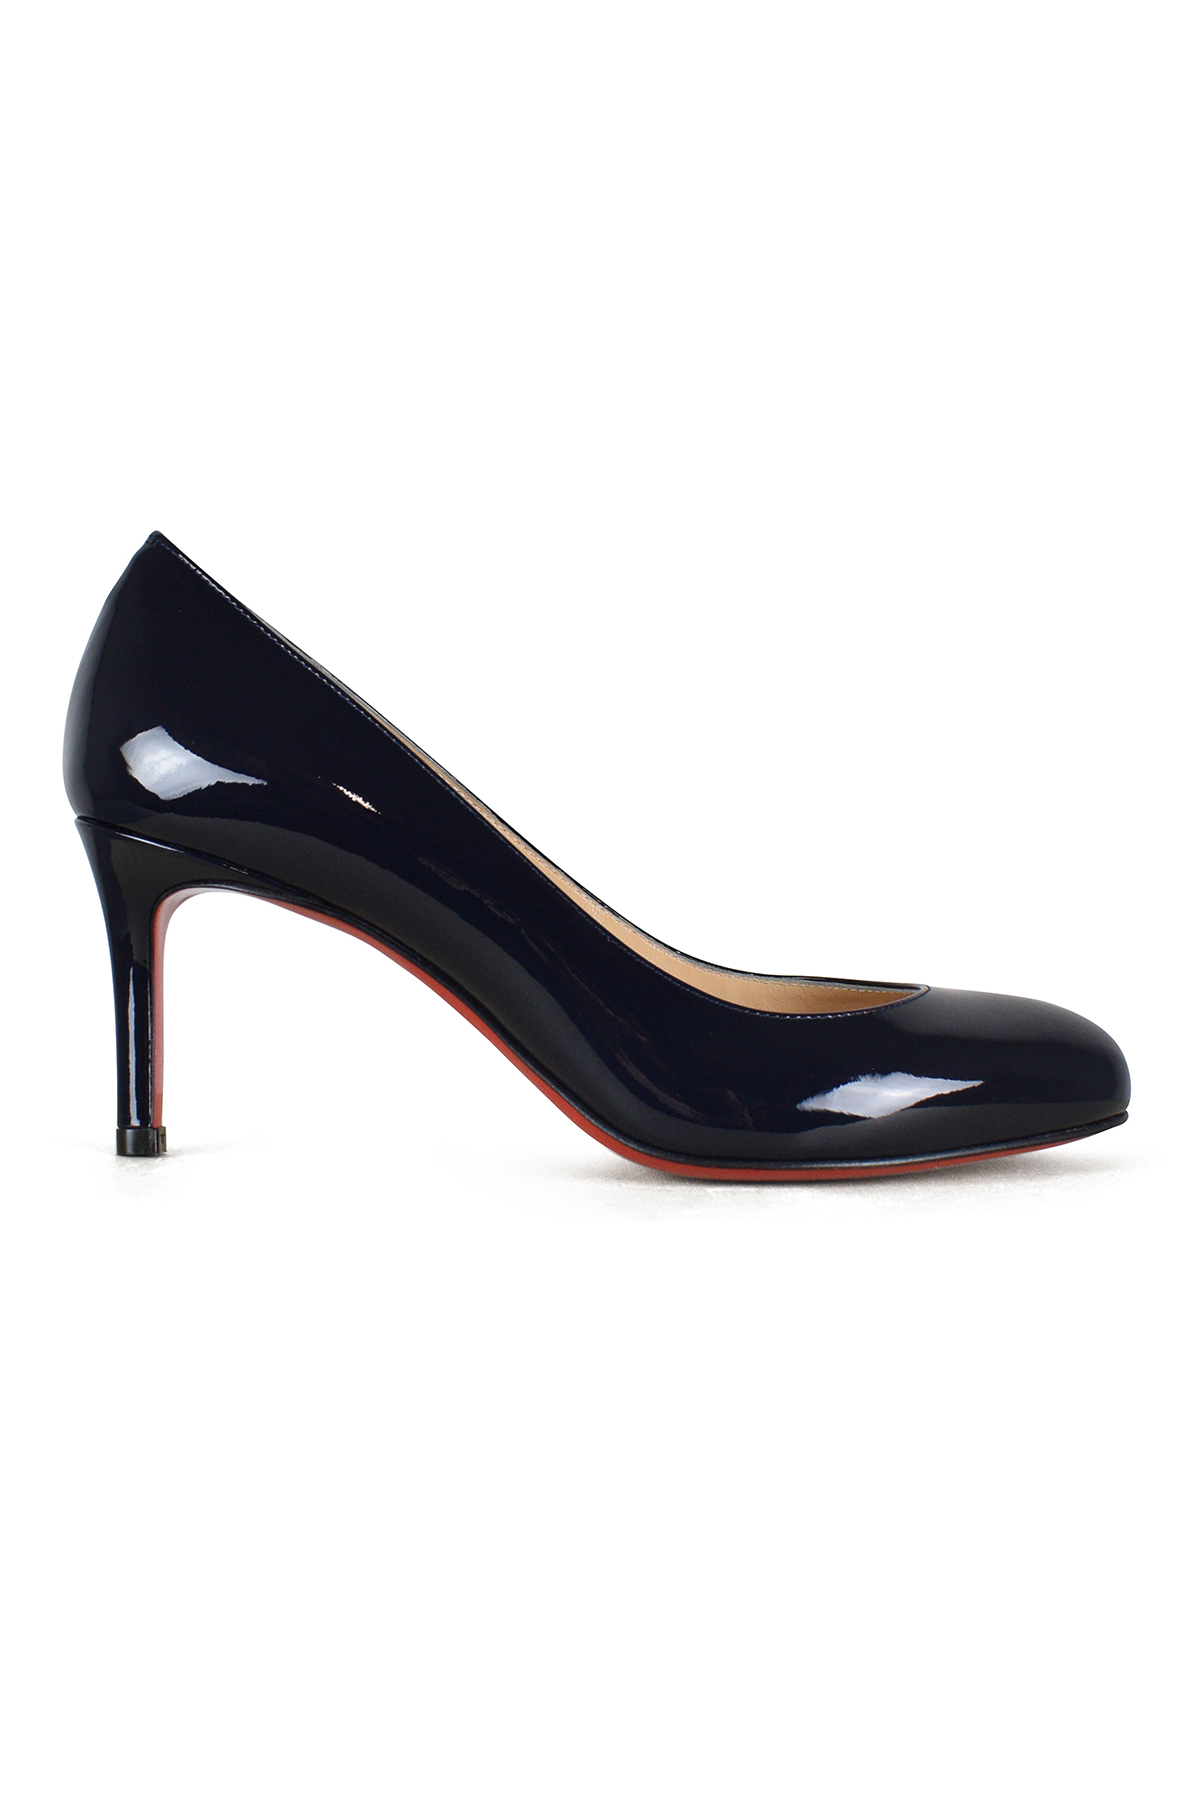 Christian Louboutin Fifille pumps 70